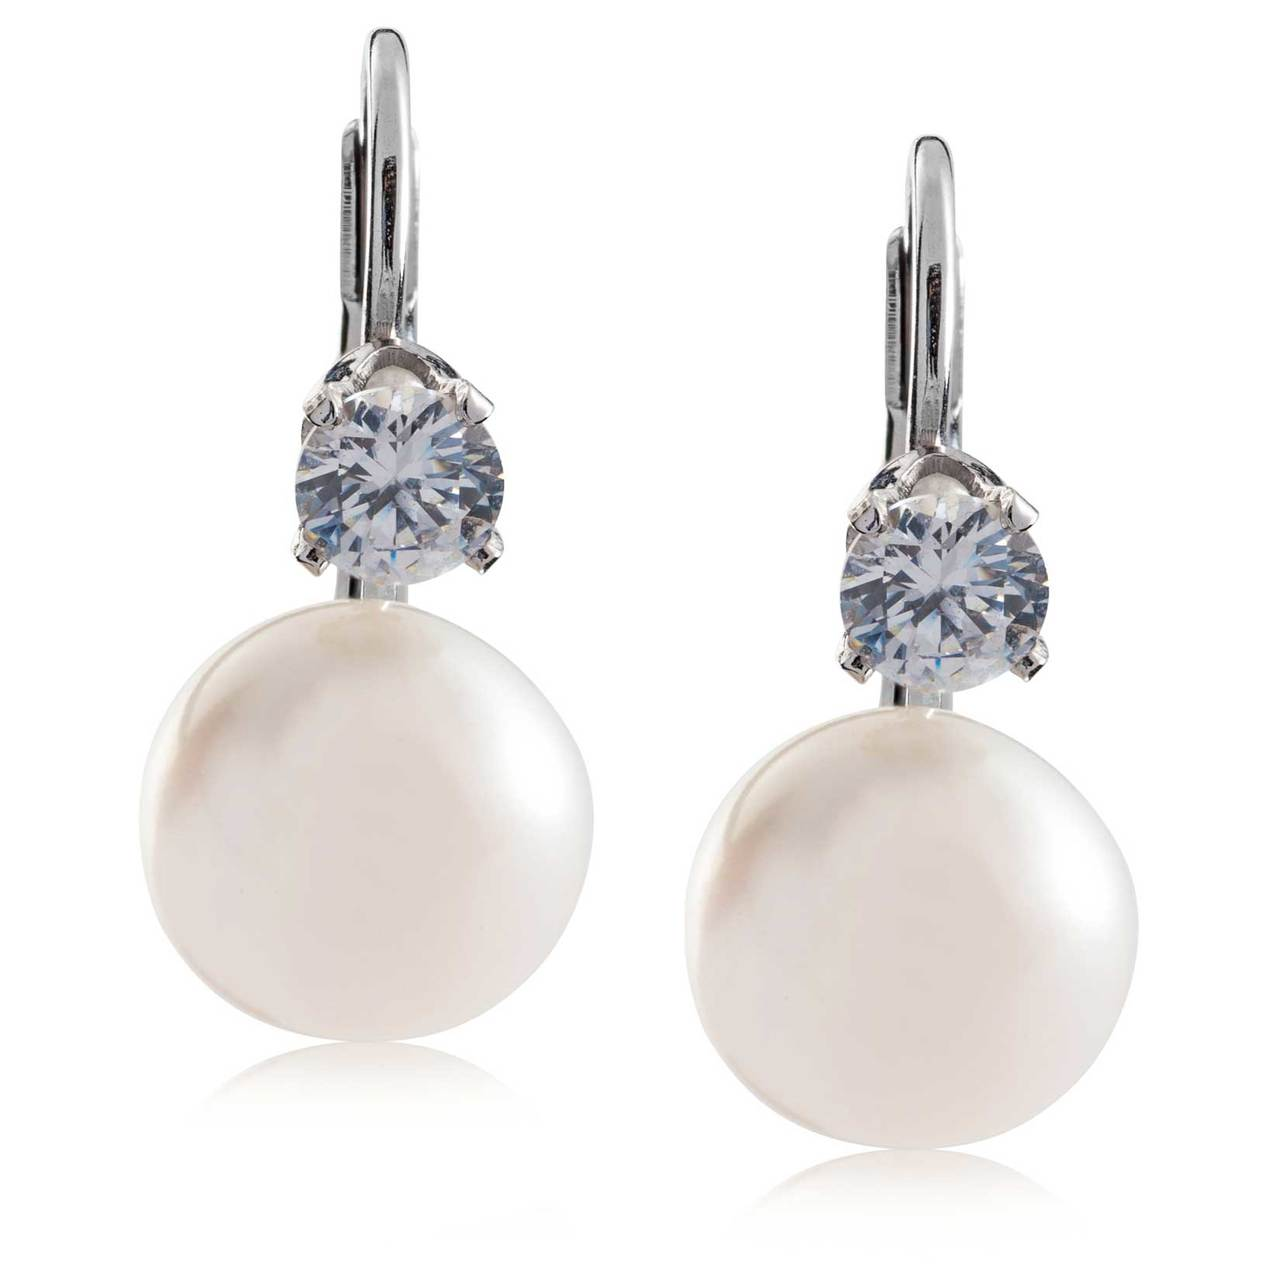 f78b17559 8mm White pearl and 4mm White CZ on Sterling Silver Lever Back Earring